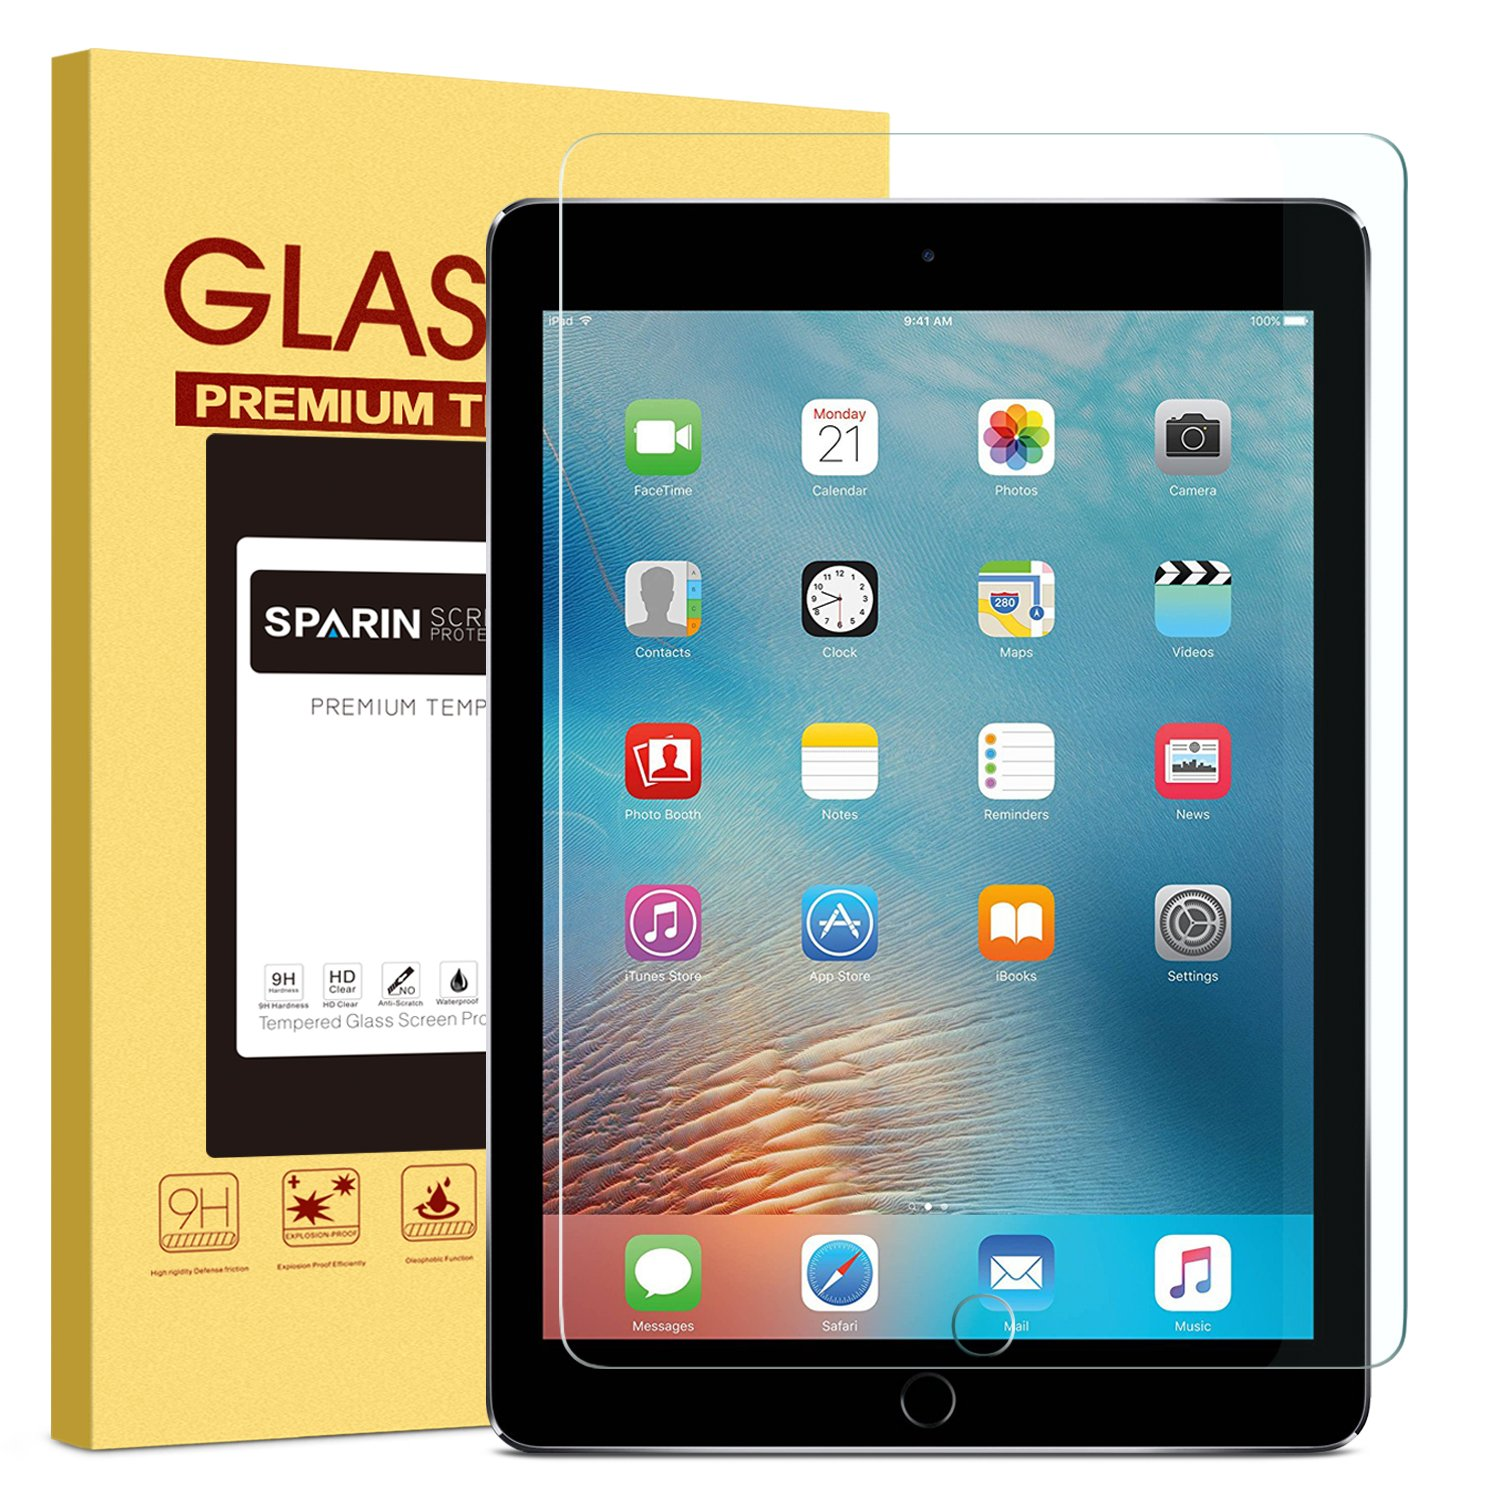 """New iPad 9.7"""" (2018 & 2017) / iPad Pro 9.7 / iPad Air 2 / iPad Air Screen Protector, SPARIN Tempered Glass Screen Protector - Apple Pencil Compatible / High Definition / Scratch Resistant"""